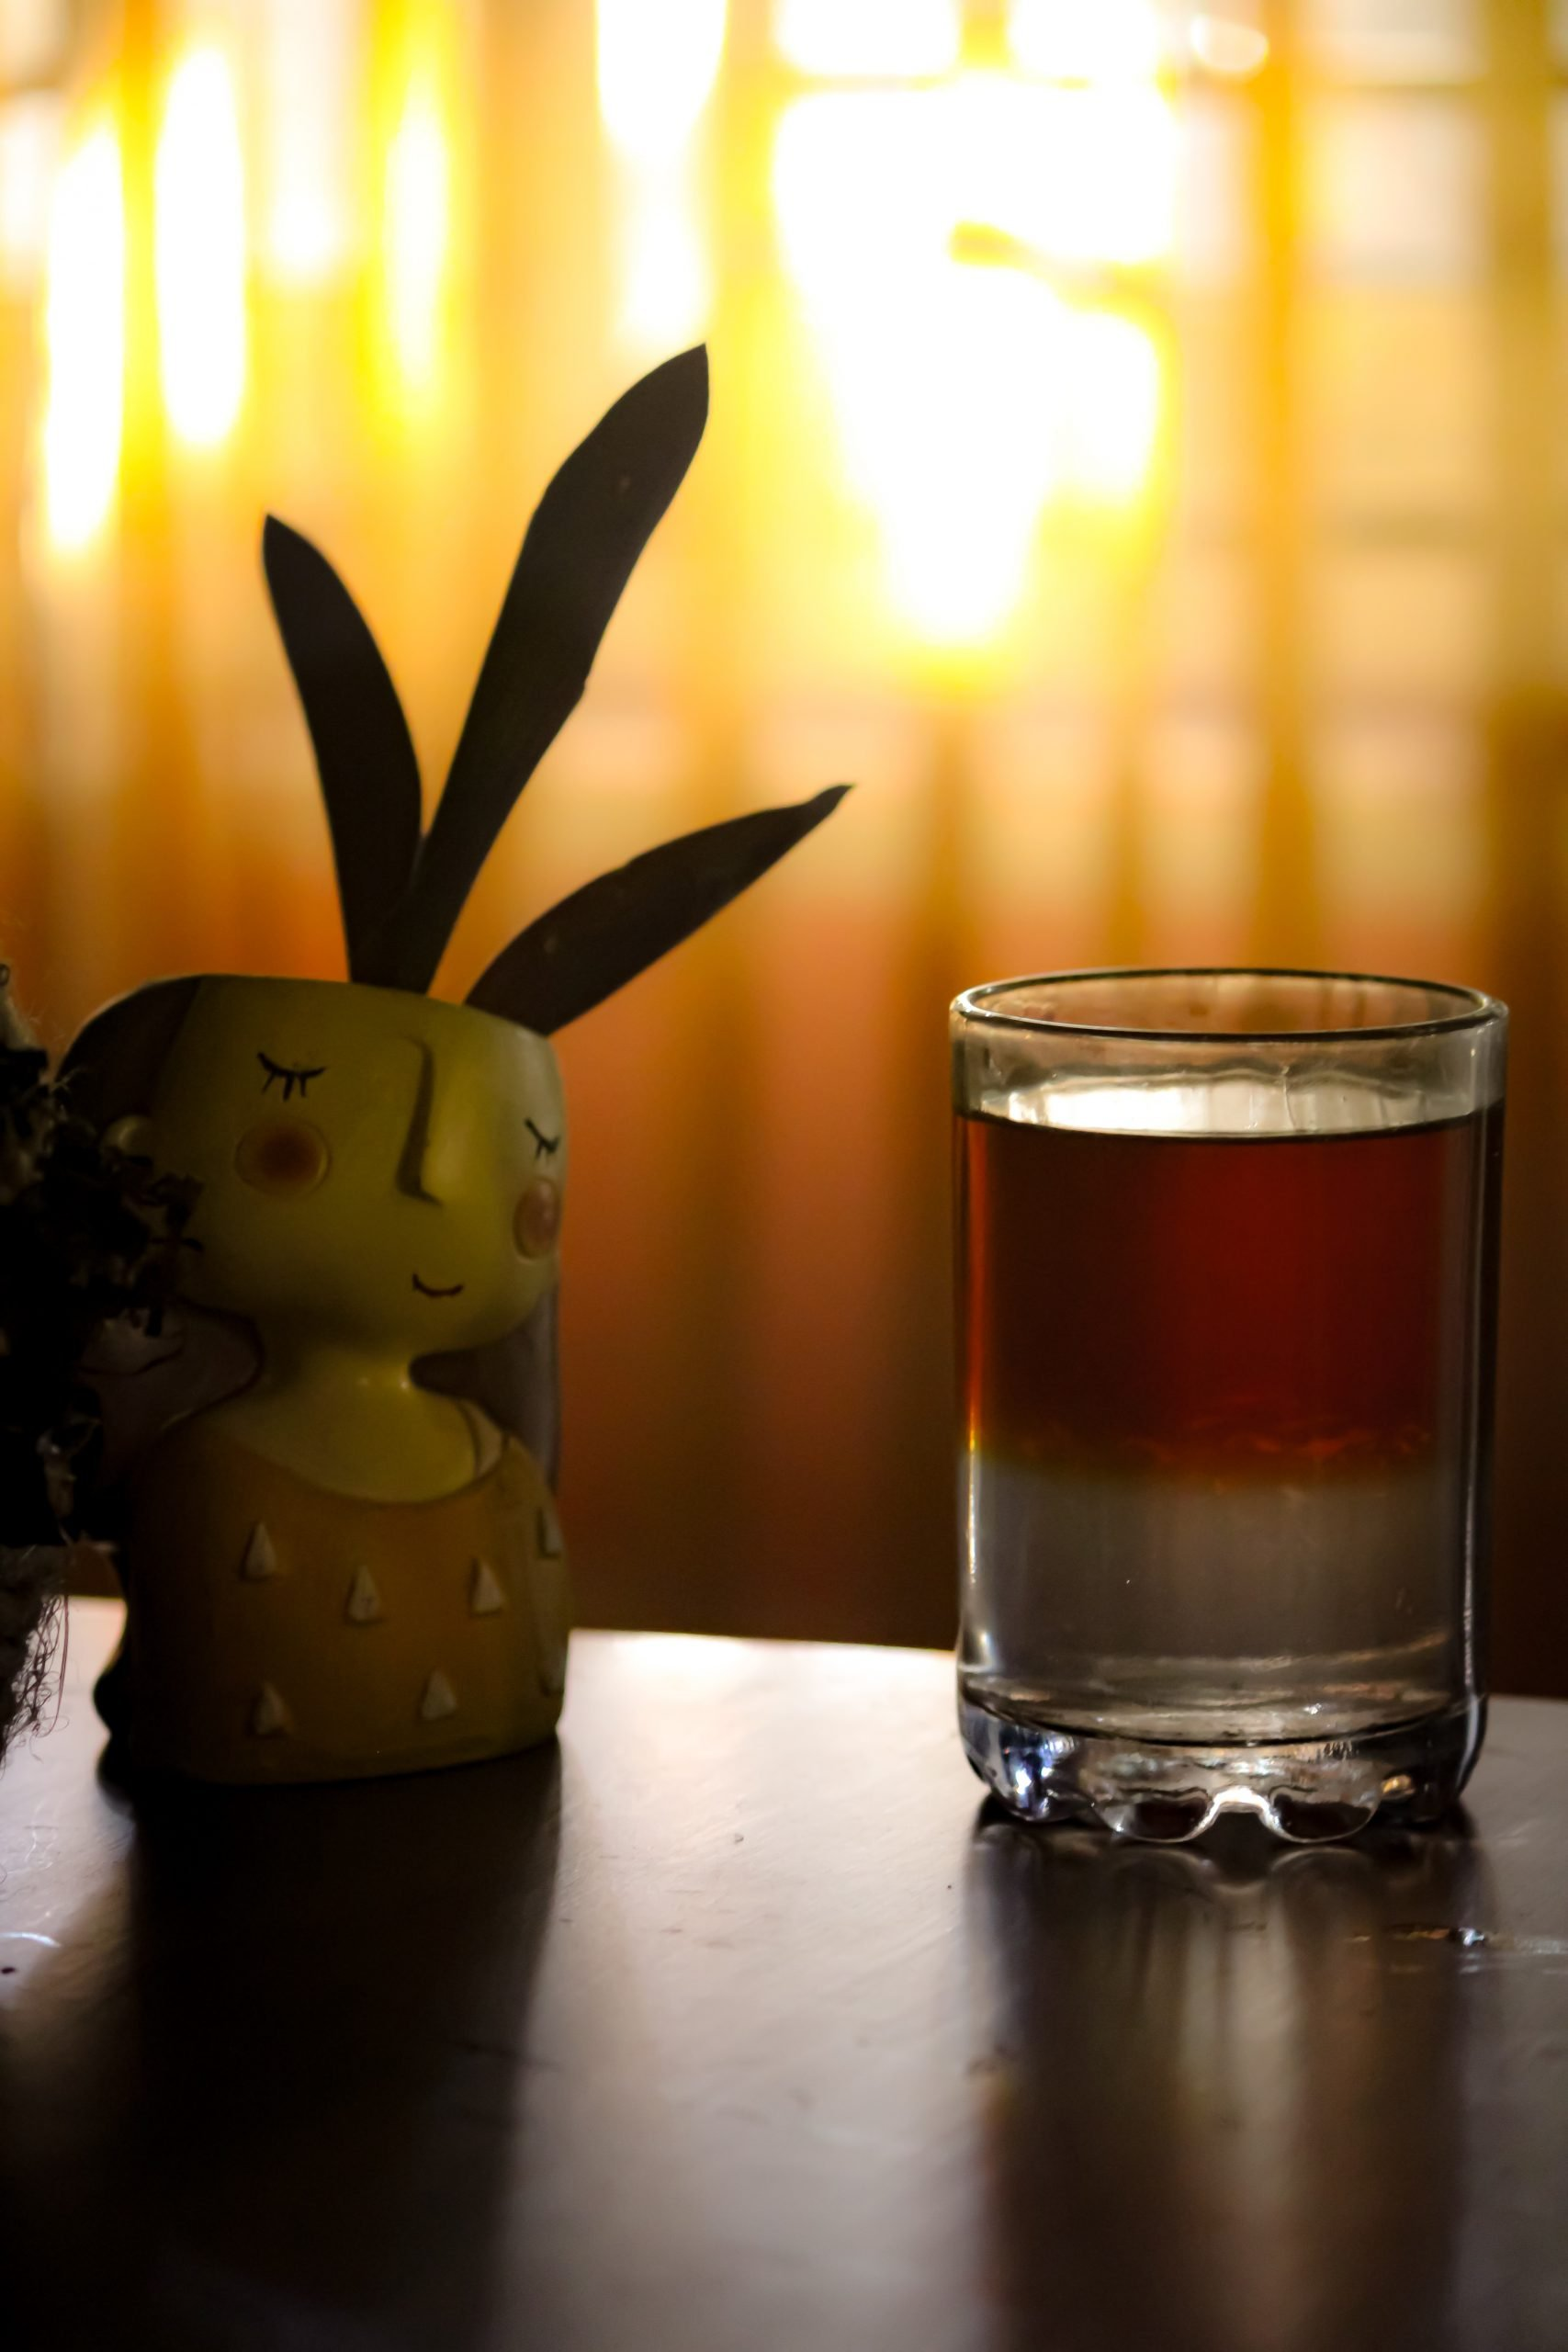 Black tea in the glass with plant pot